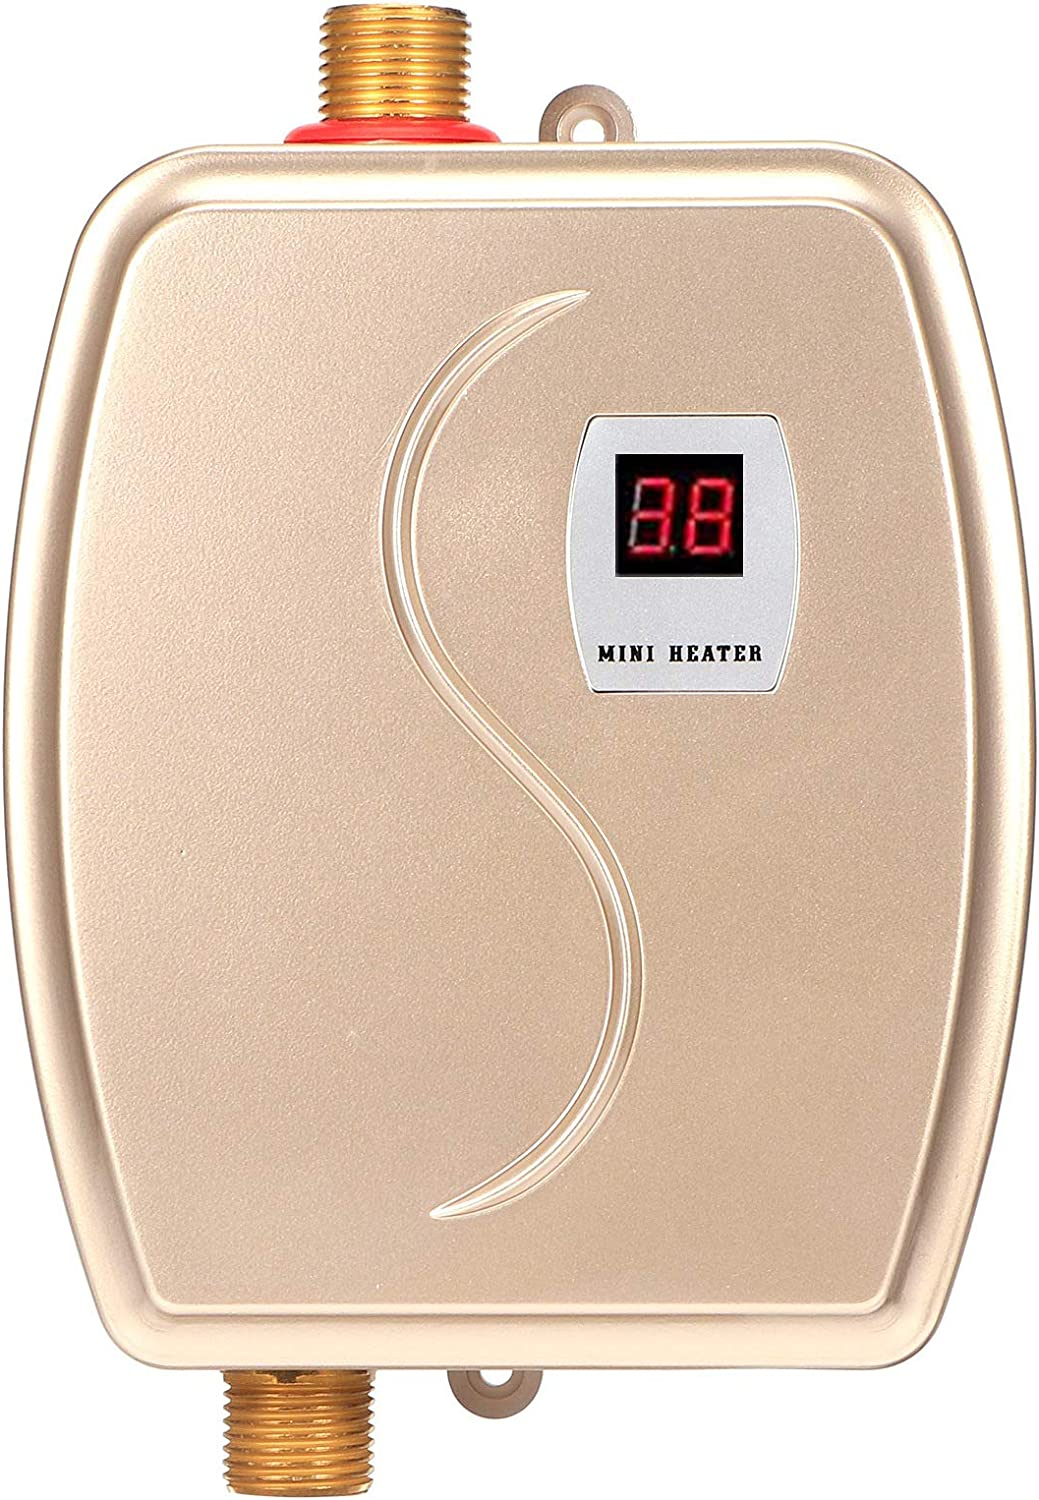 Water Heater 3000W Portable Mini E Instant Max 45% OFF Heating Max 69% OFF